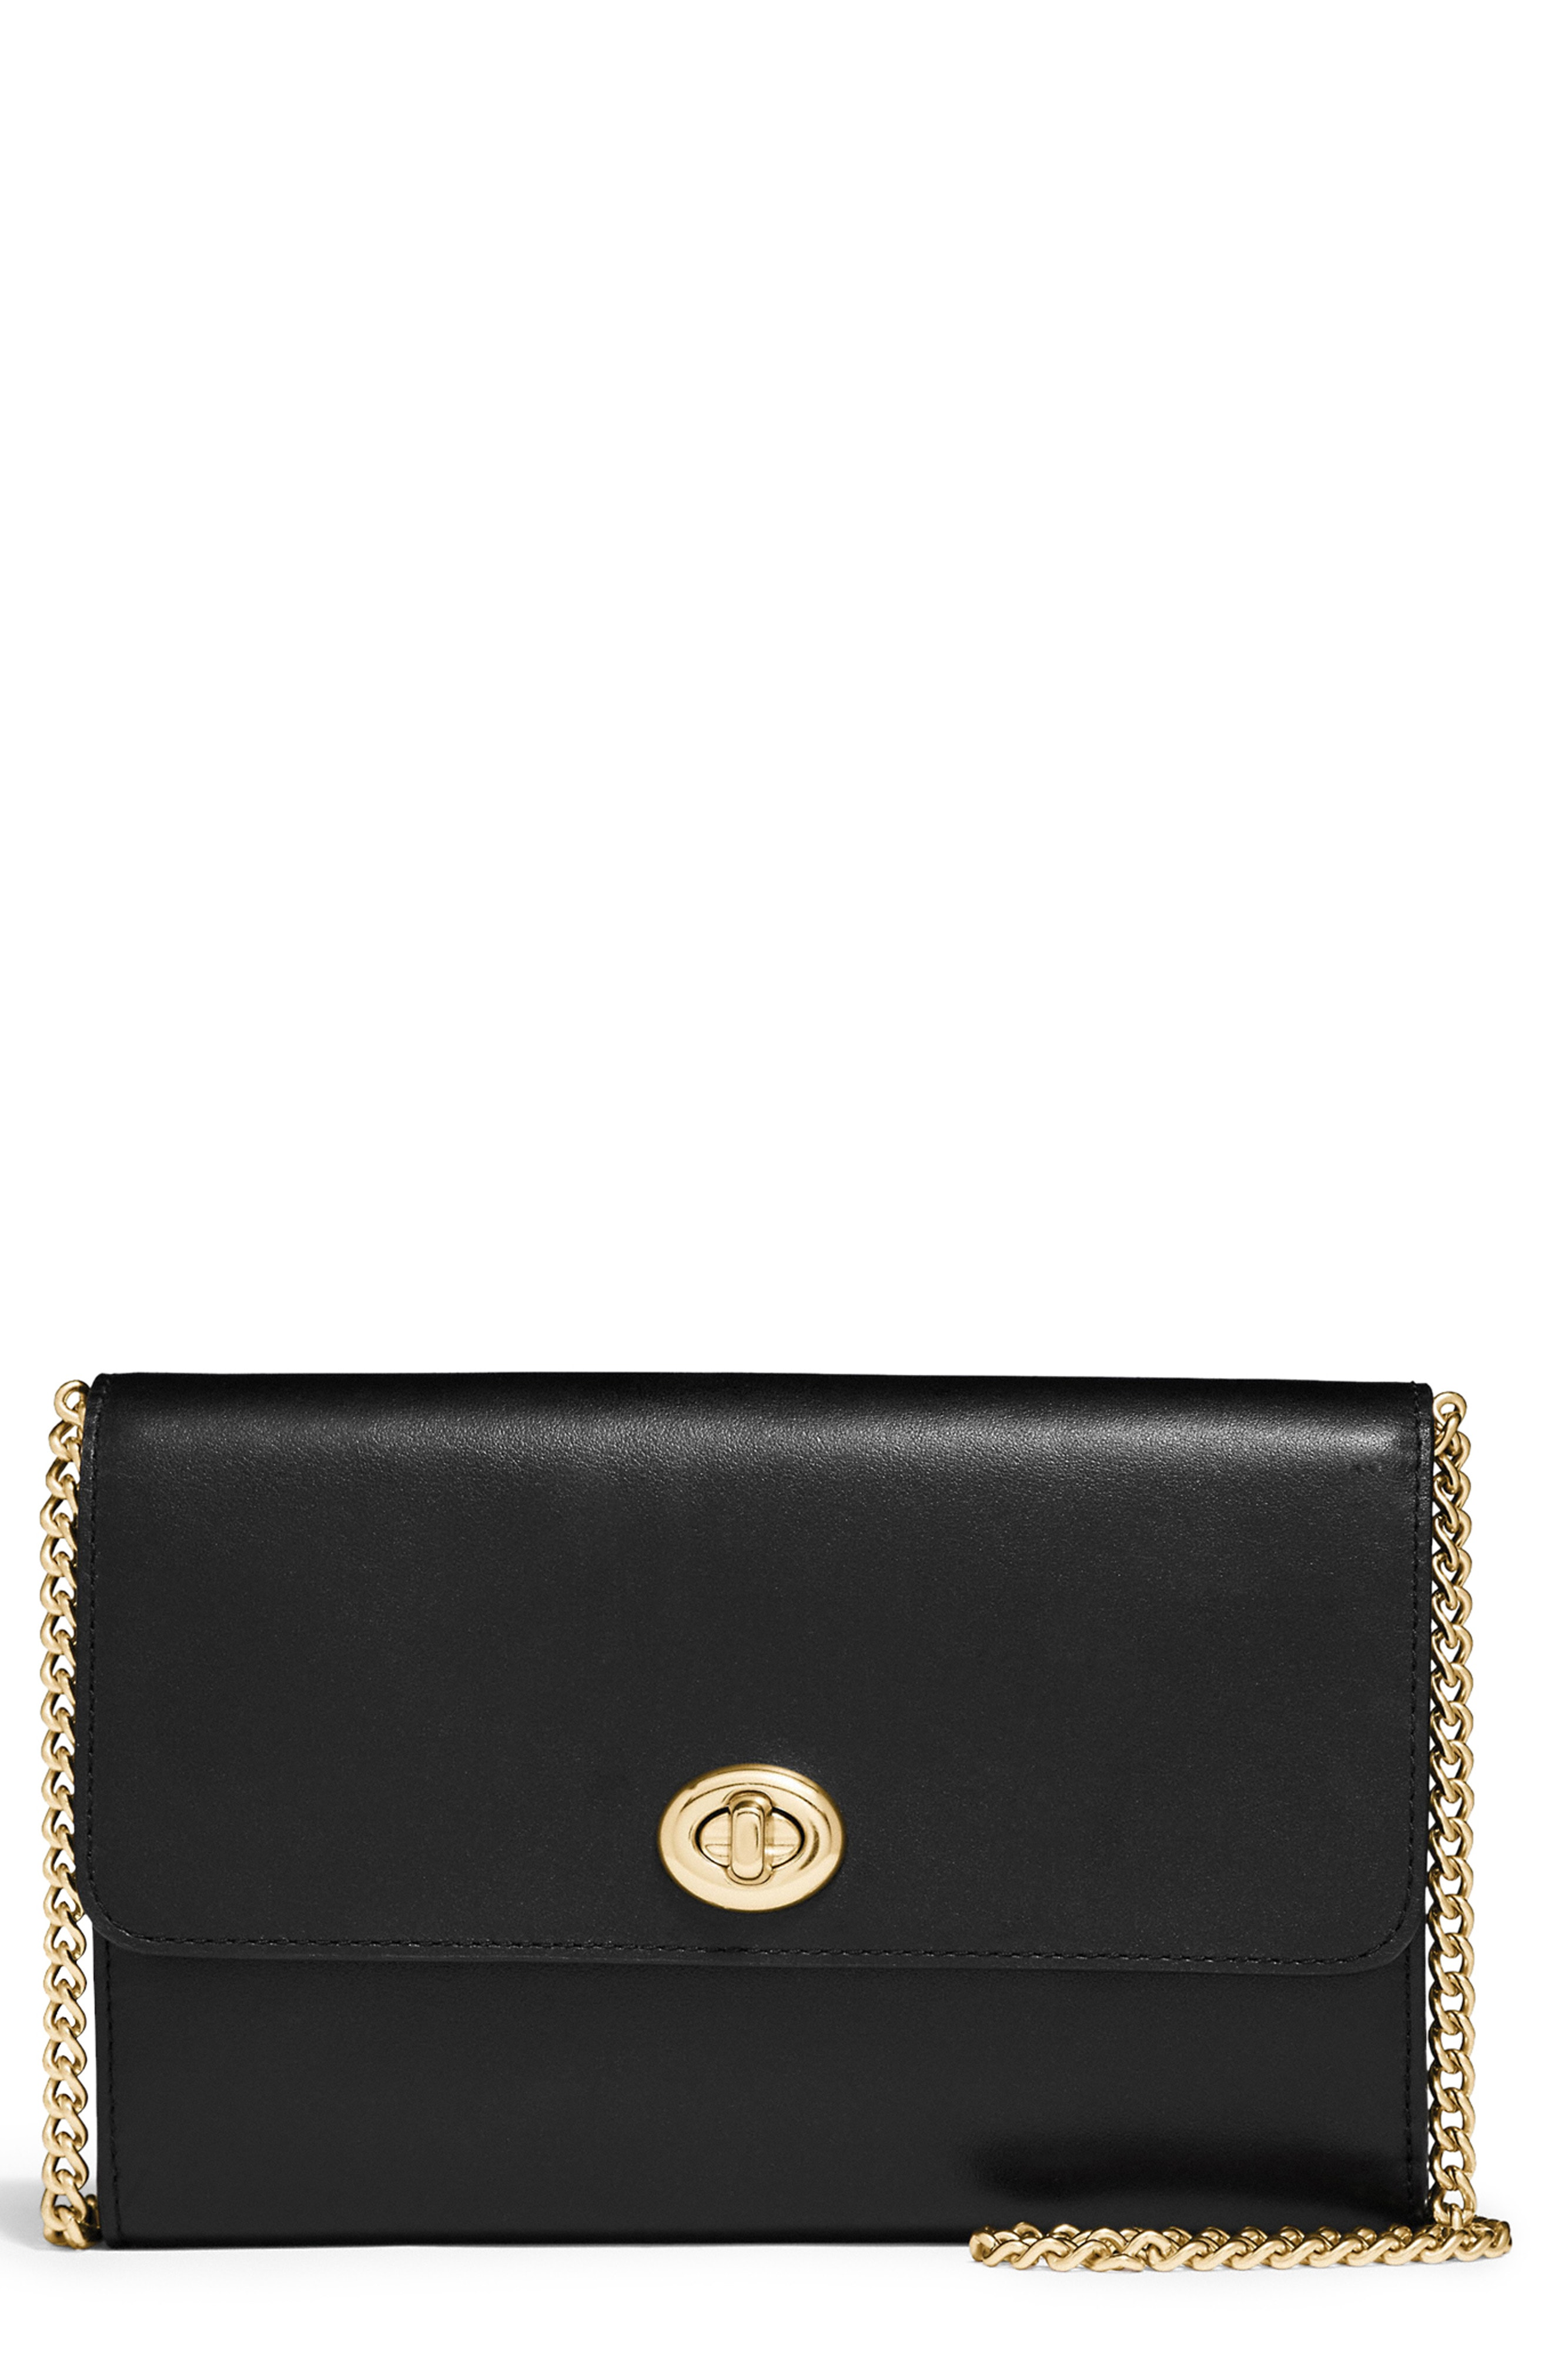 COACH Smooth Leather Flap Wallet